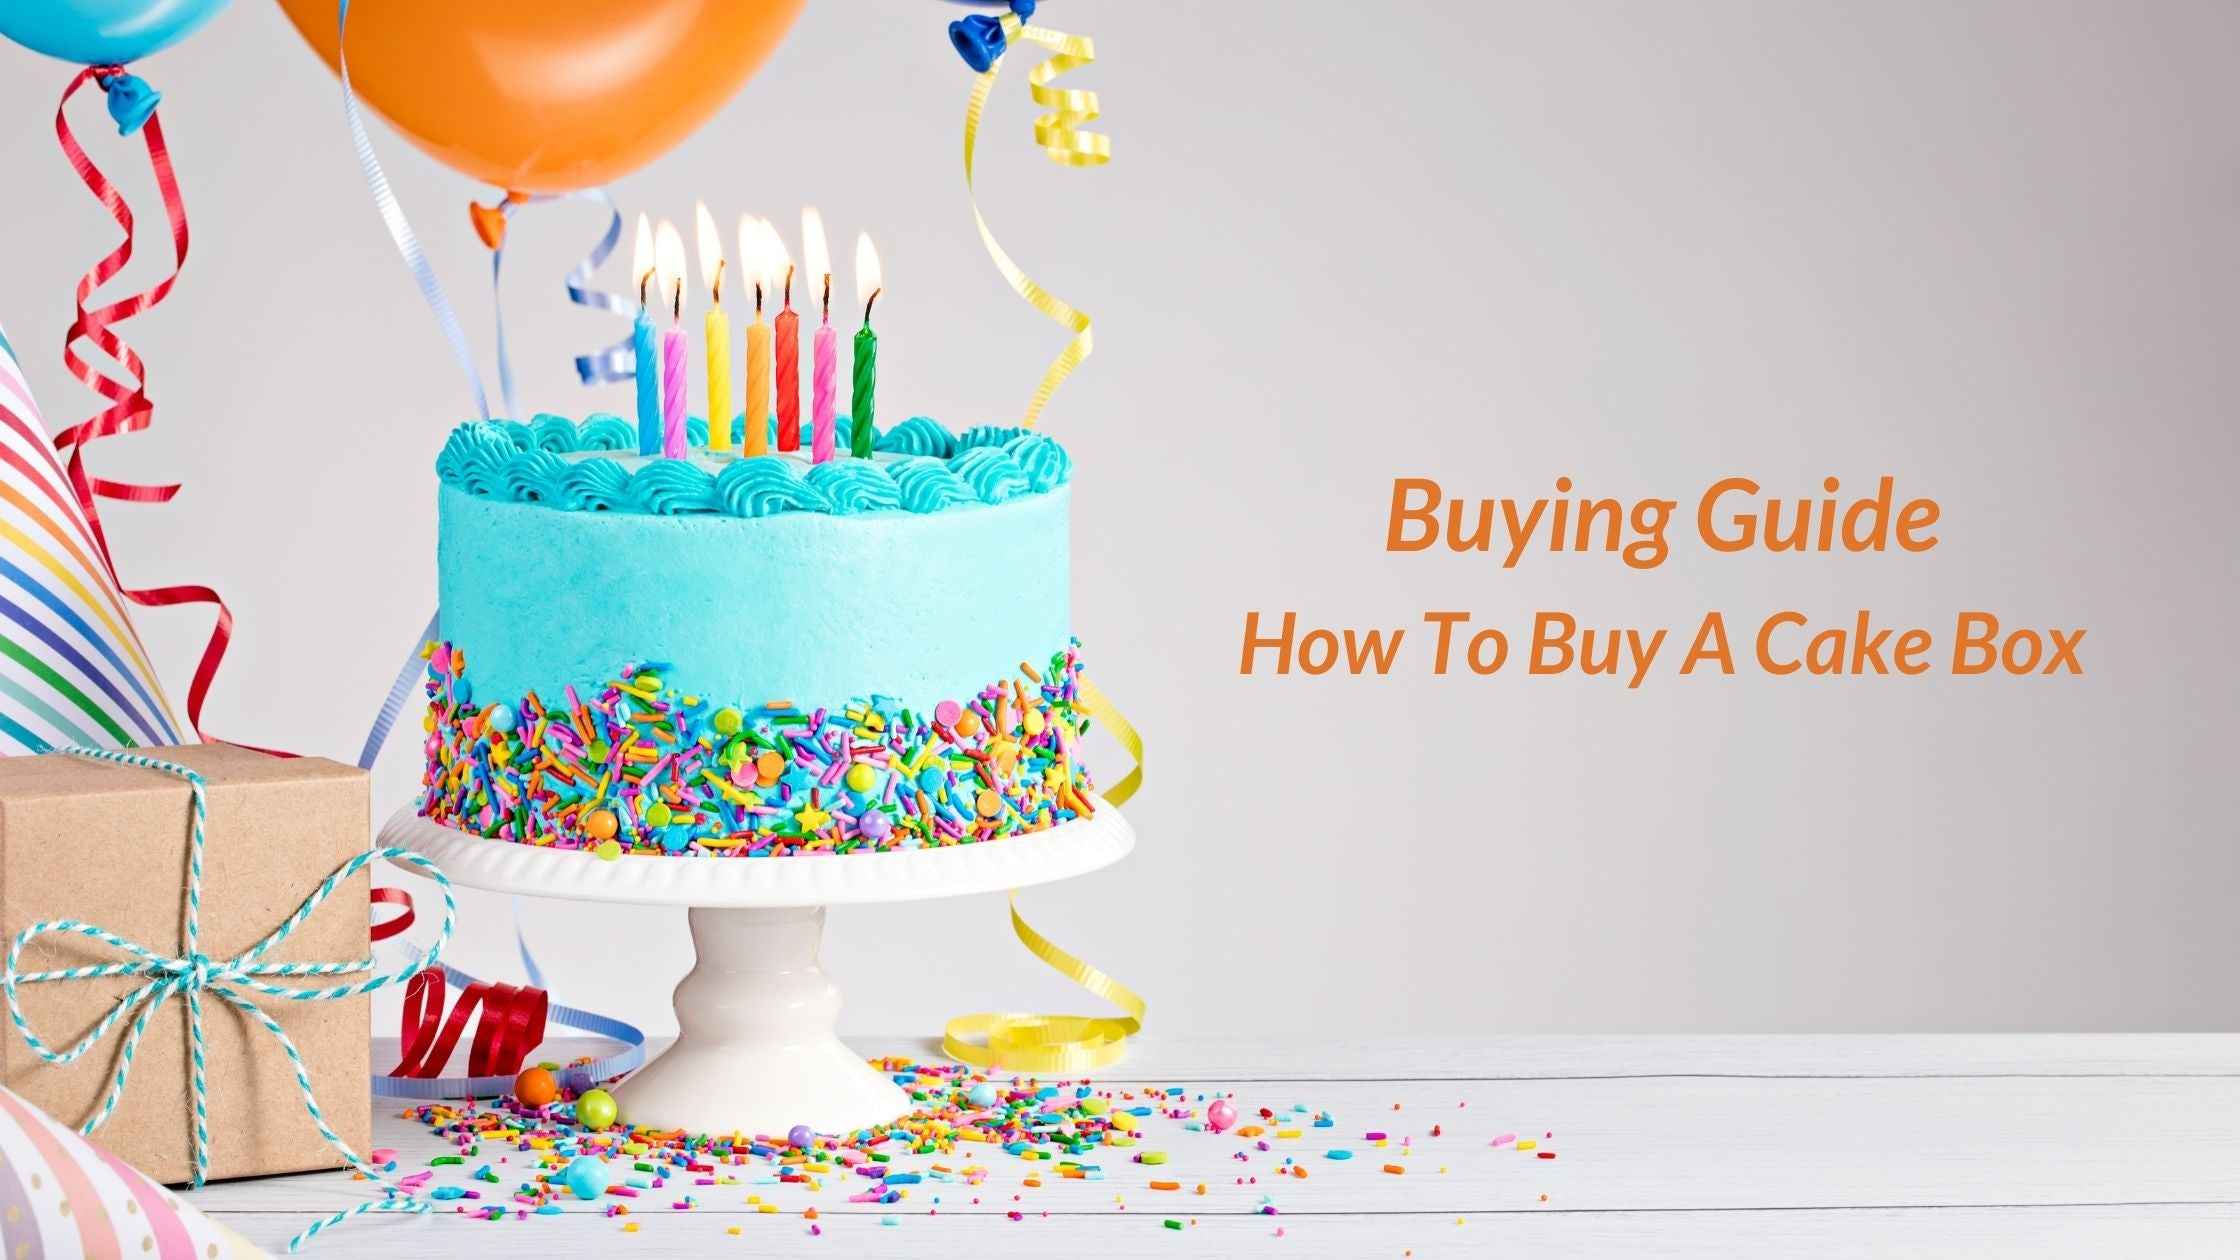 Buying Guide: How To Buy A Cake Box